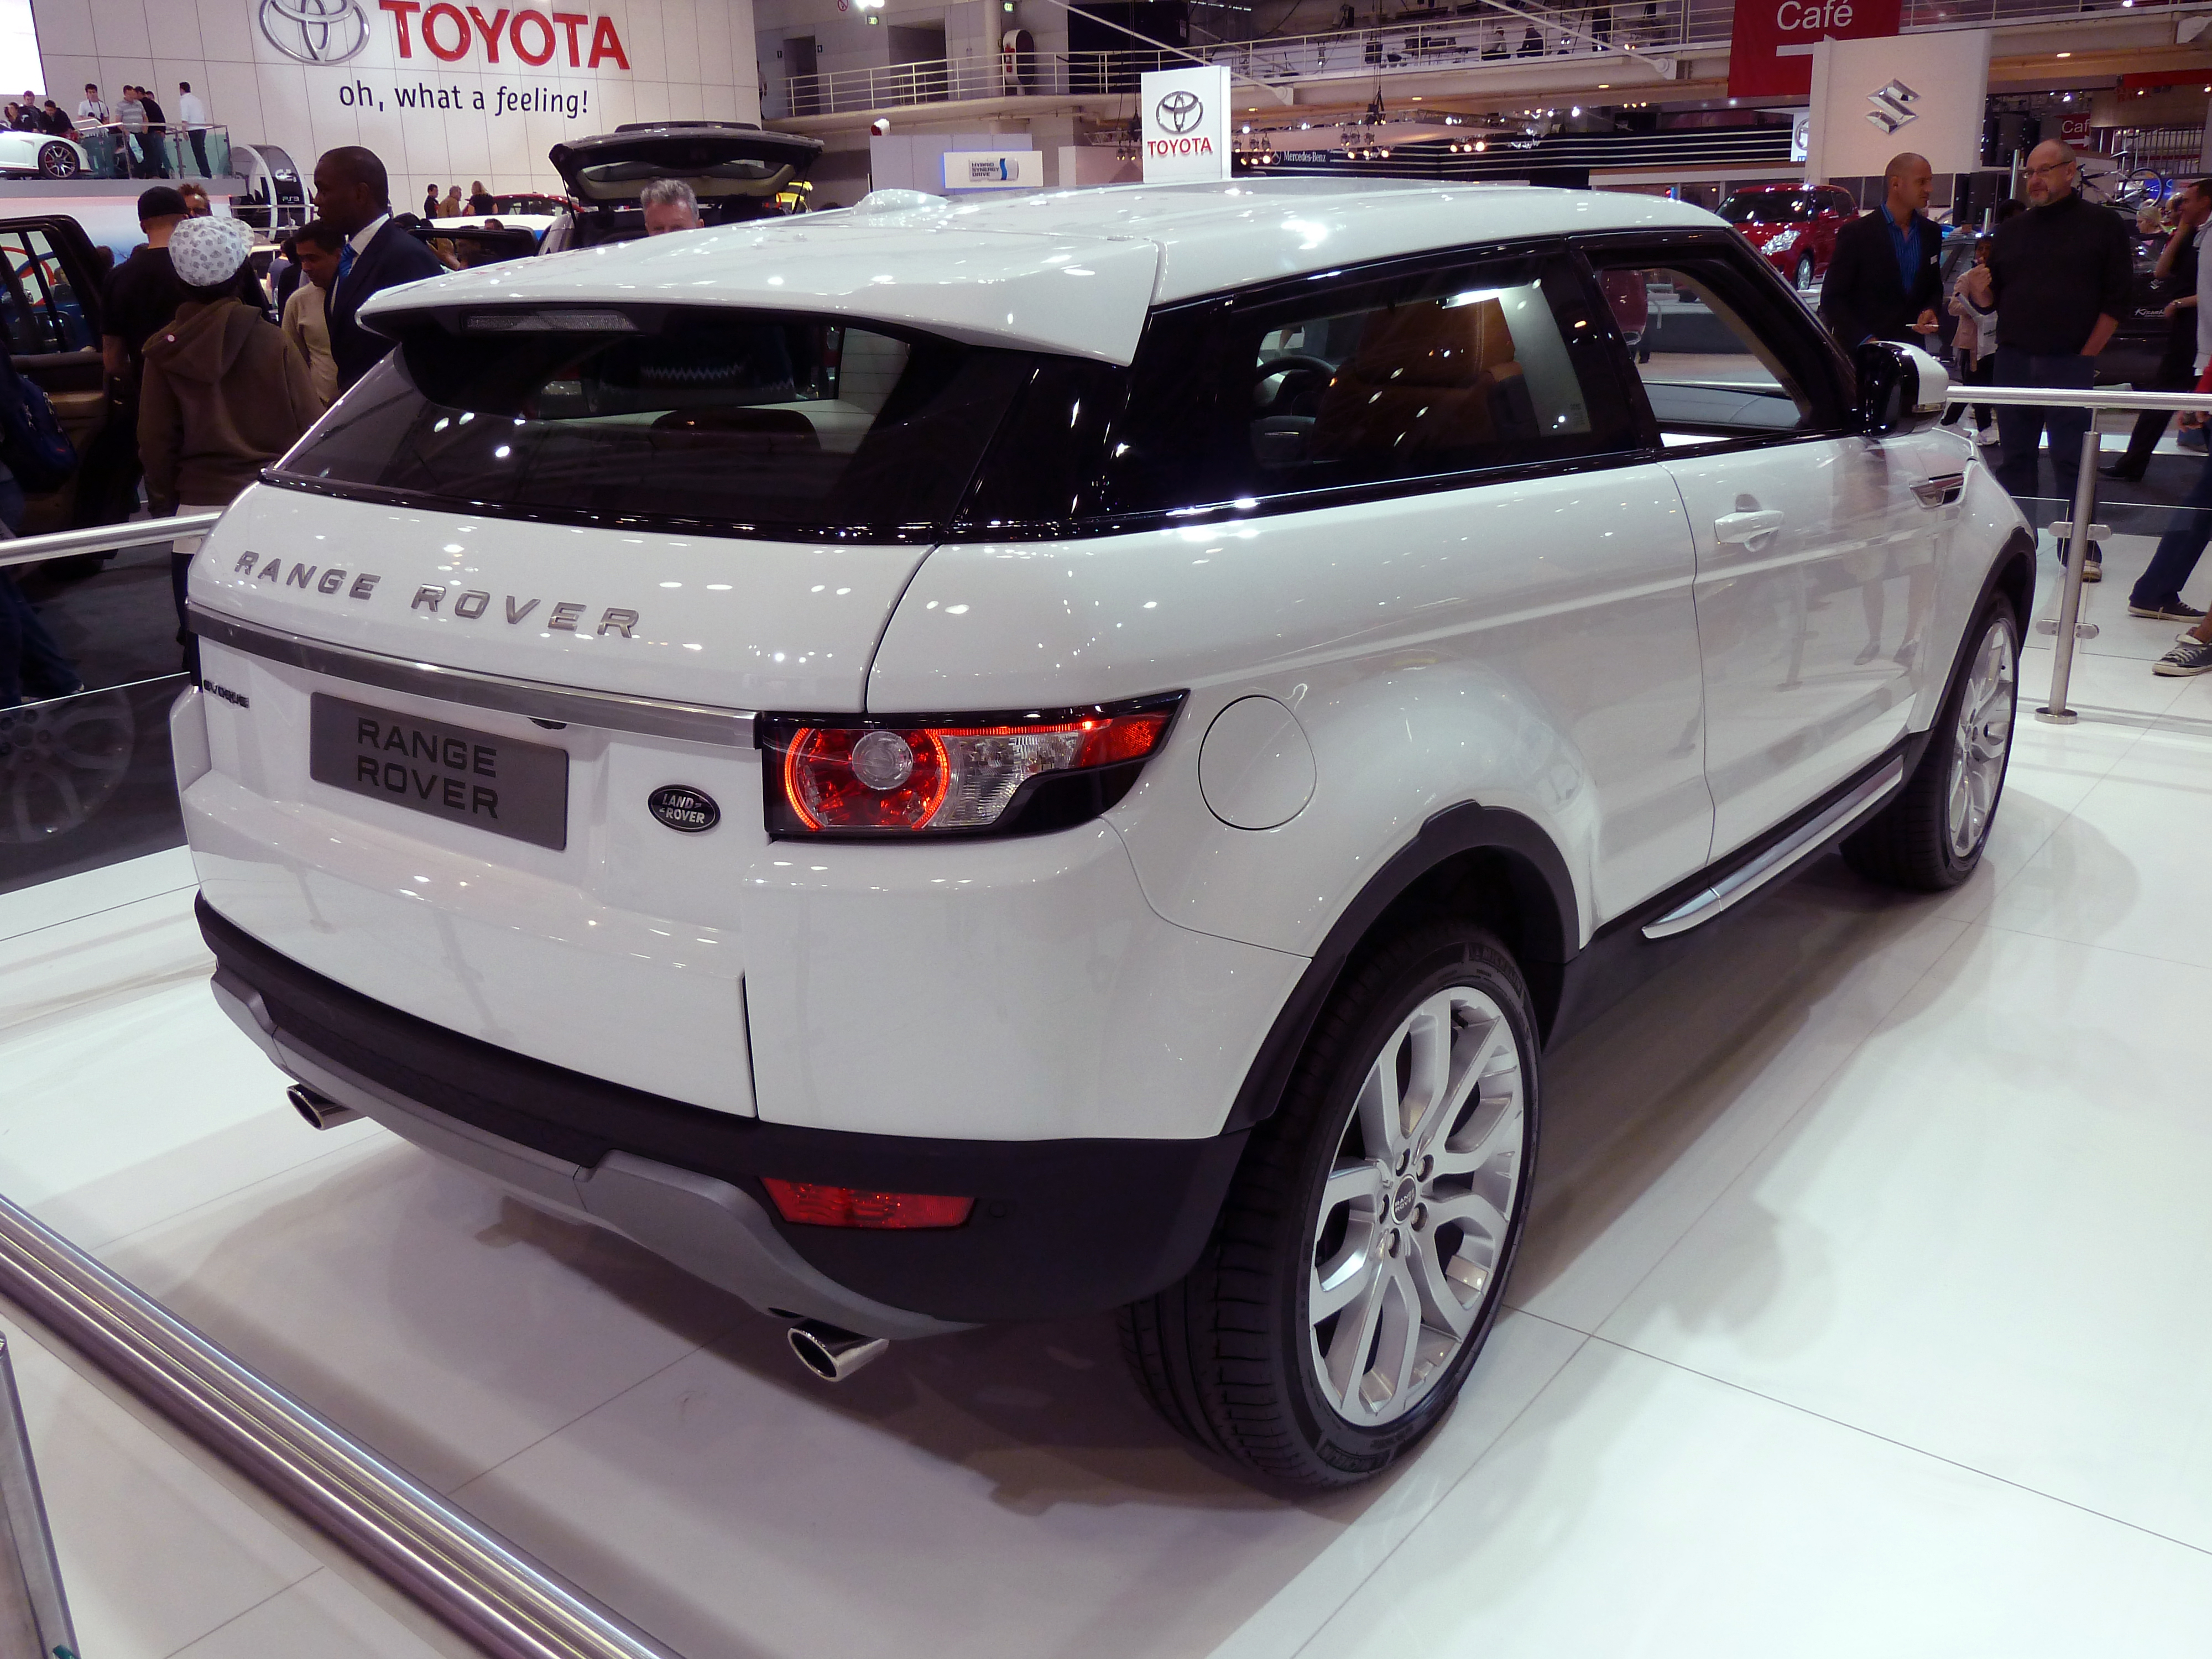 file range rover evoque 3 door wagon prototype 2010 10 16 wikipedia. Black Bedroom Furniture Sets. Home Design Ideas